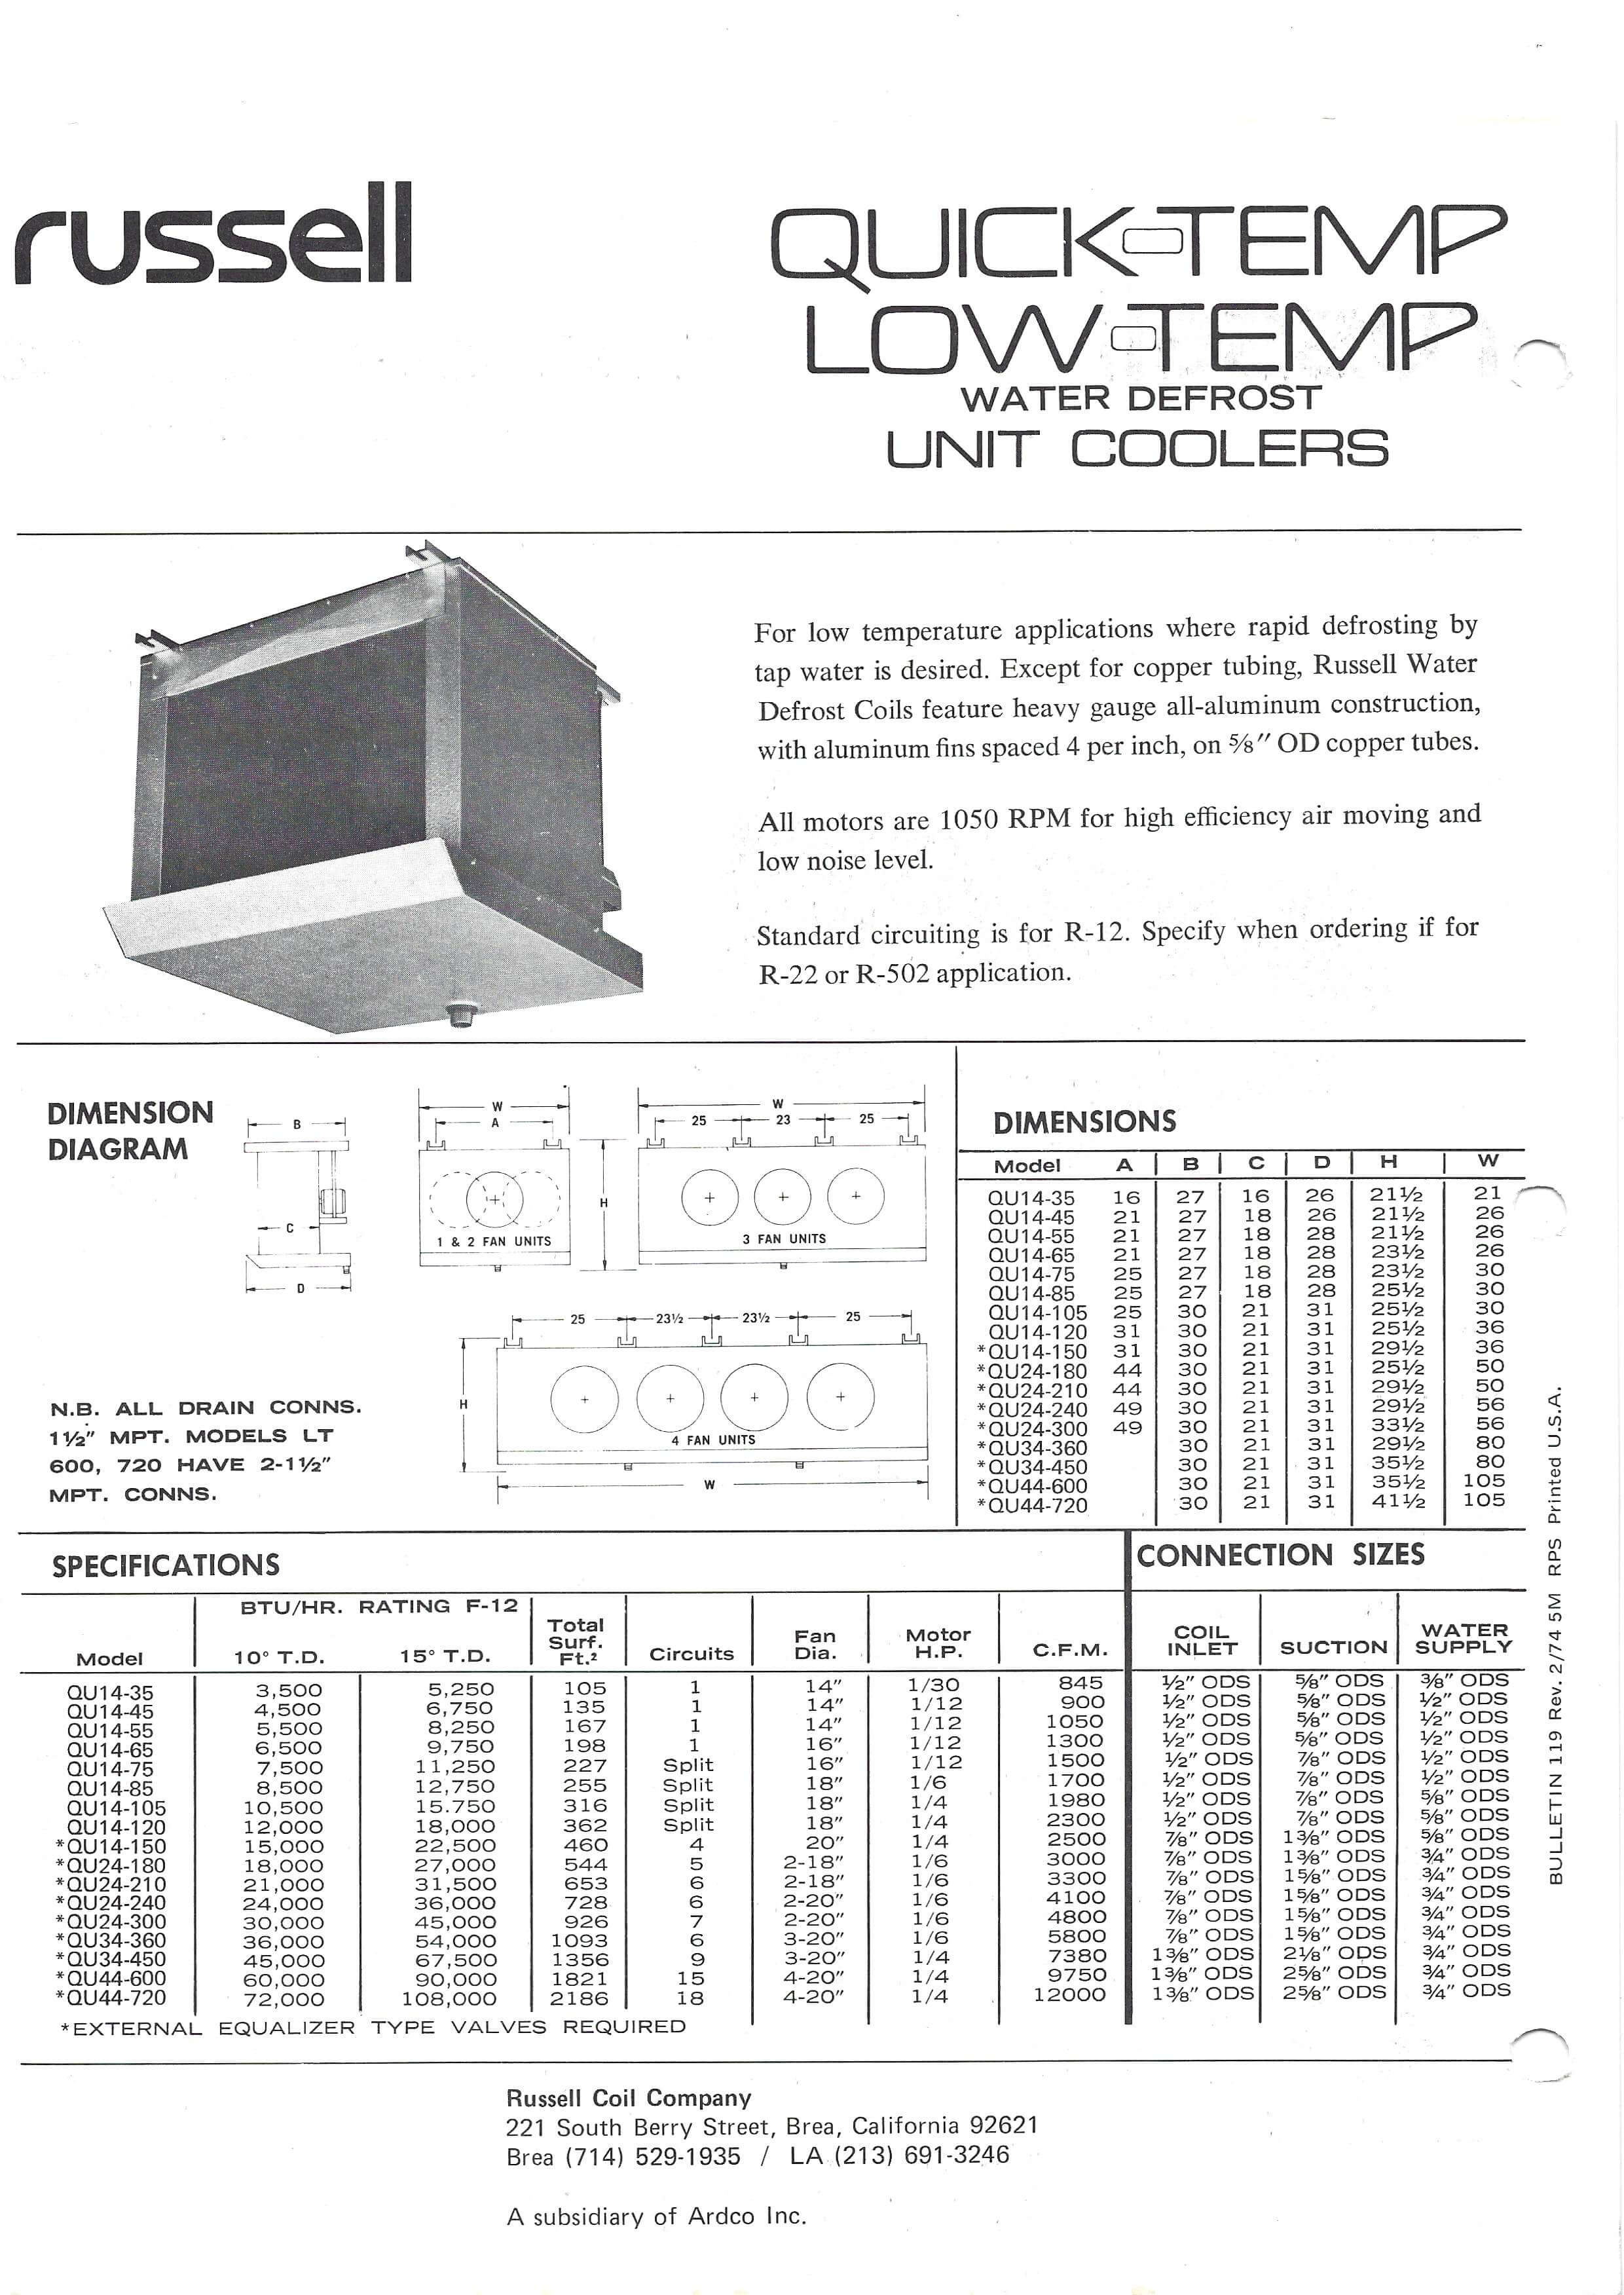 Quick-Temp Low-Temp Water Defrost Unit Coolers 1974